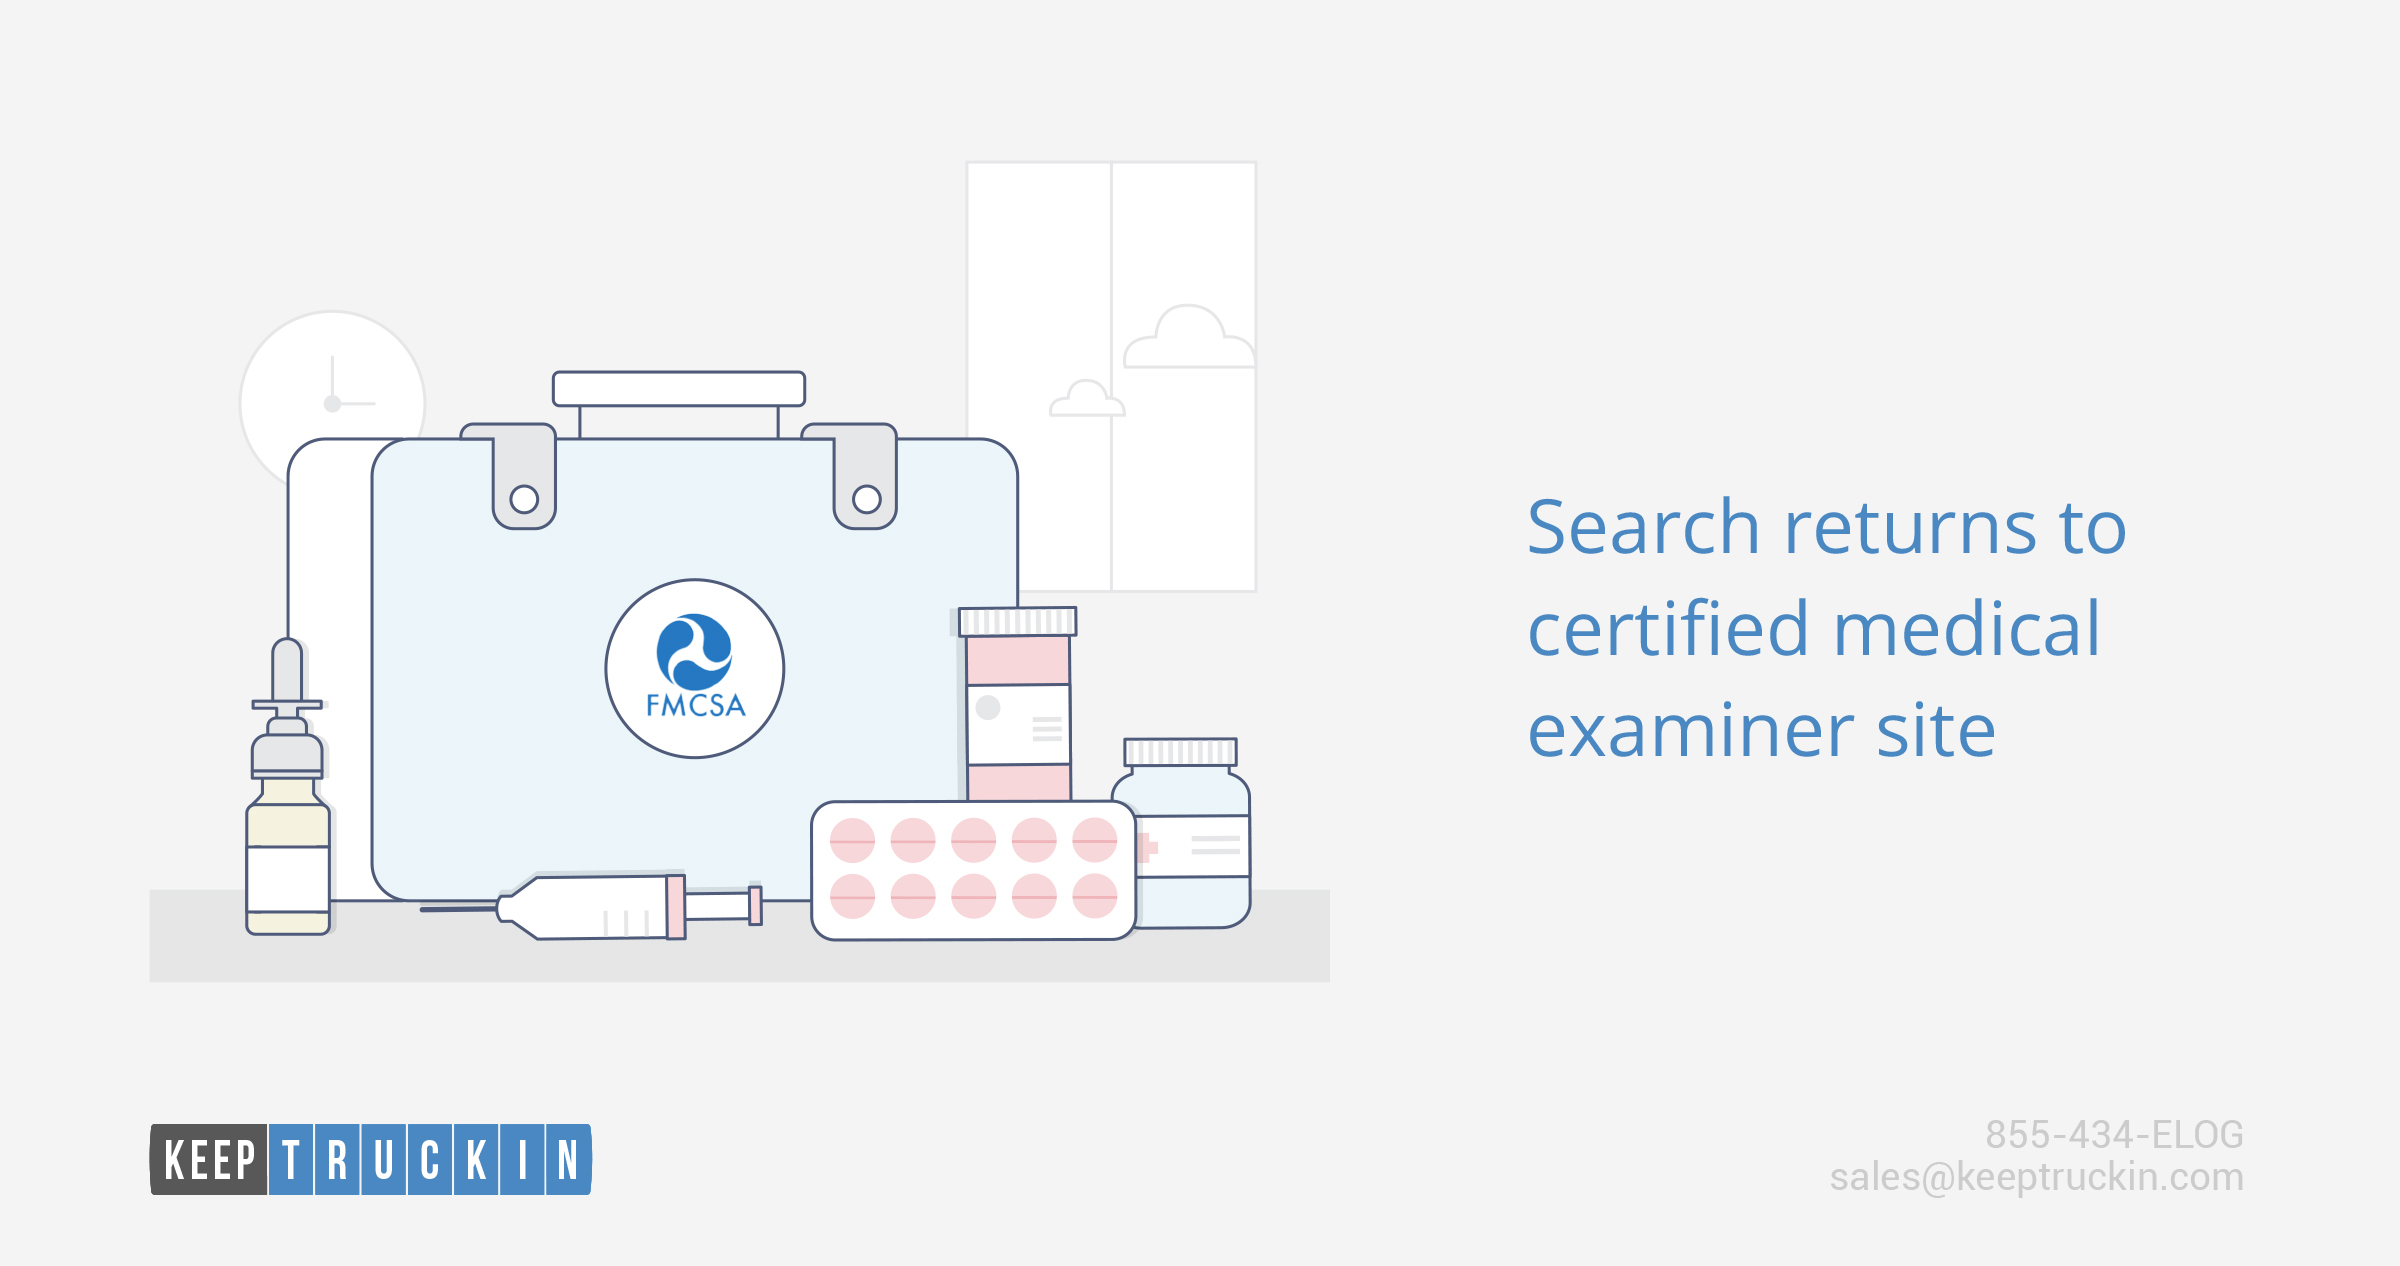 Search returns to certified medical examiners site